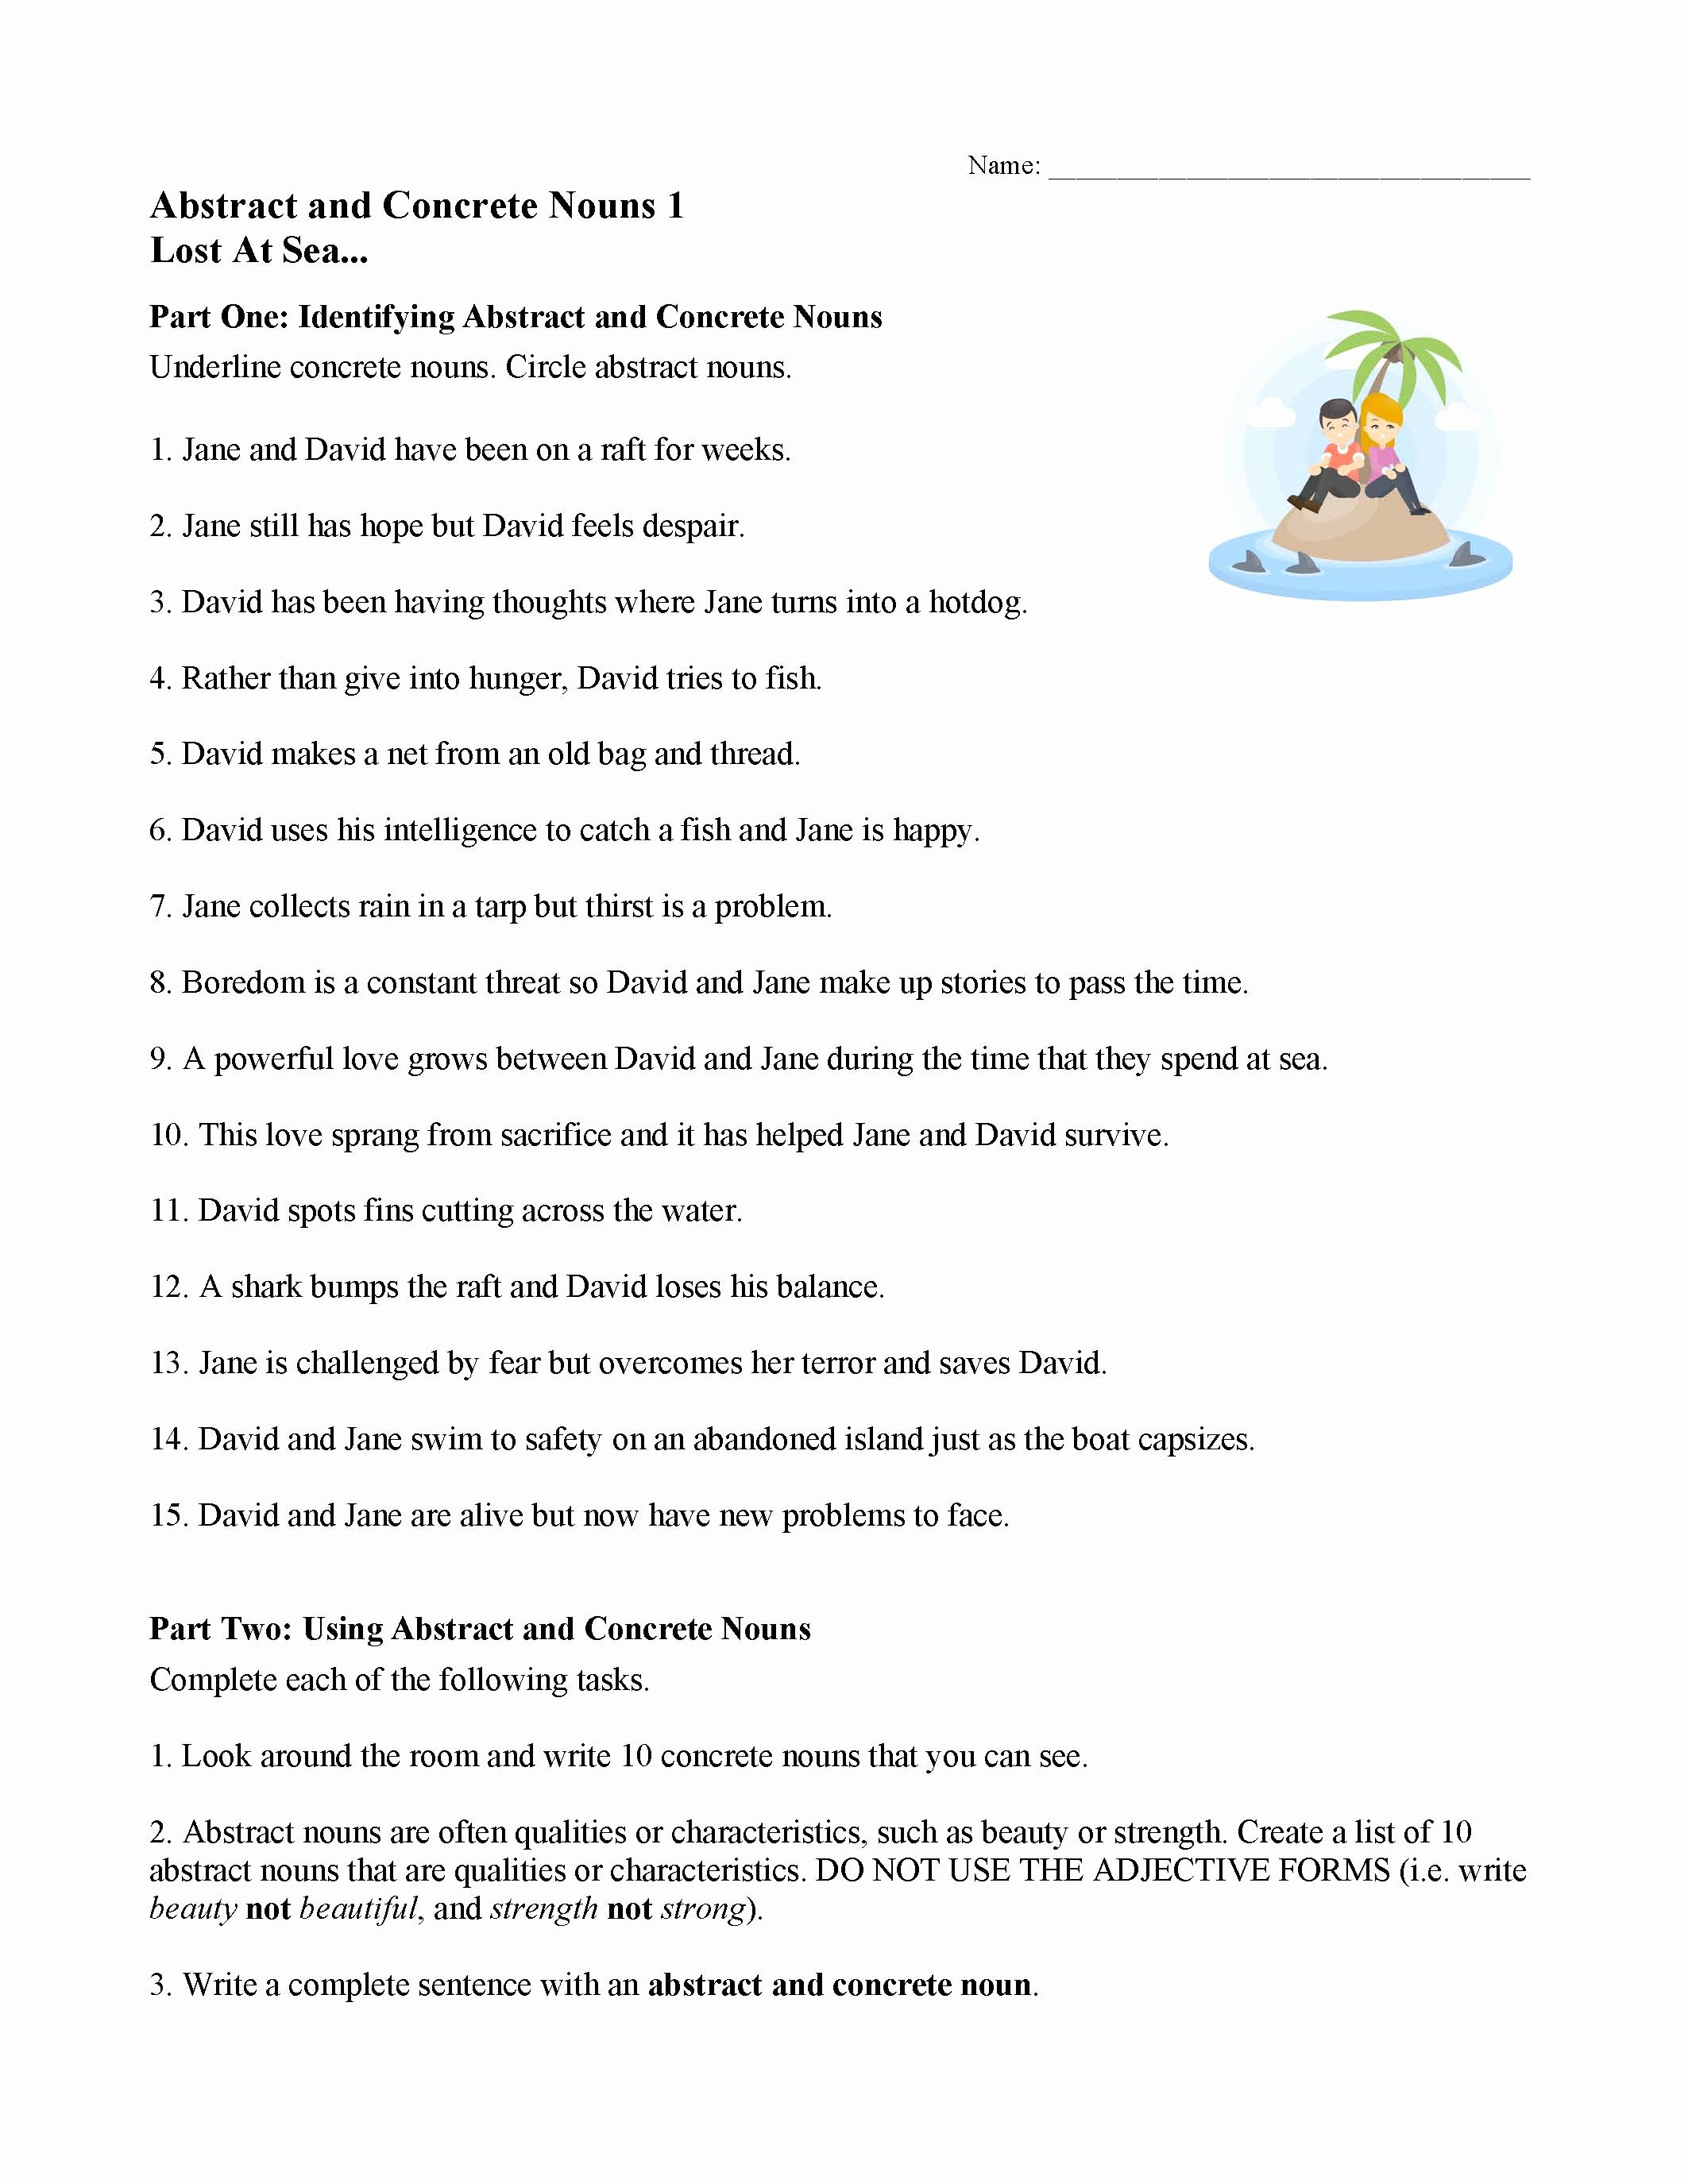 Concrete and Abstract Nouns Worksheet Awesome Concrete and Abstract Nouns Worksheet